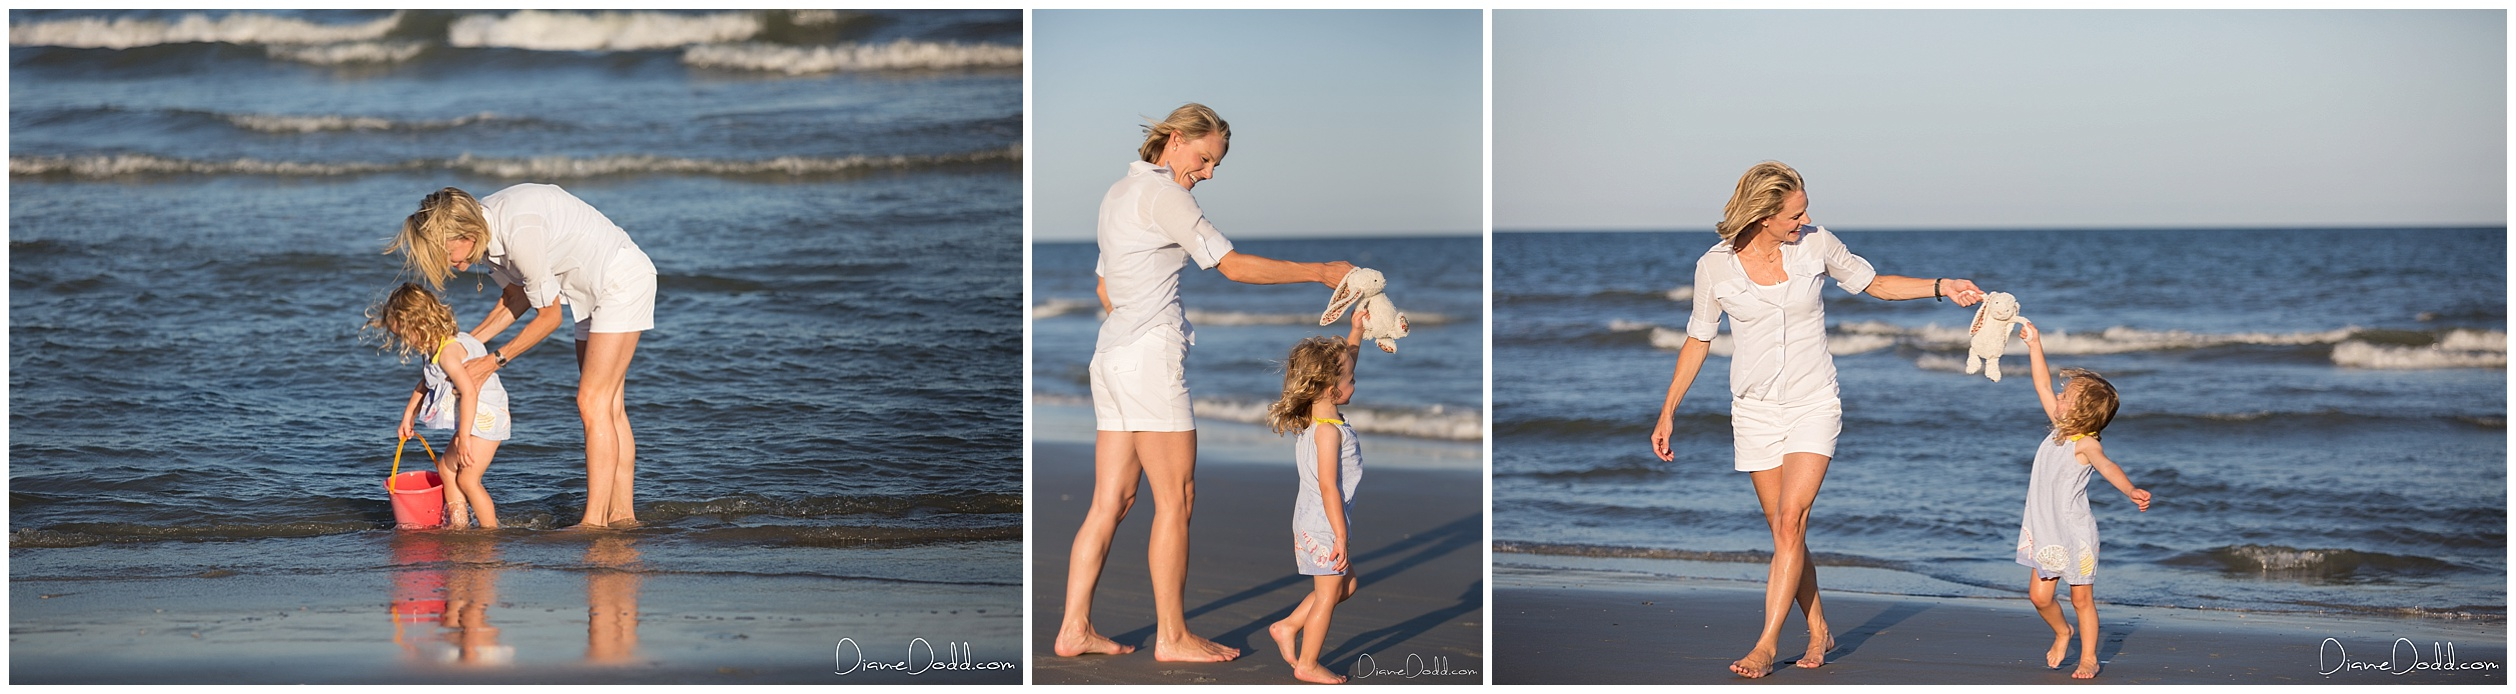 hilton-head-family-portraits-164.jpg